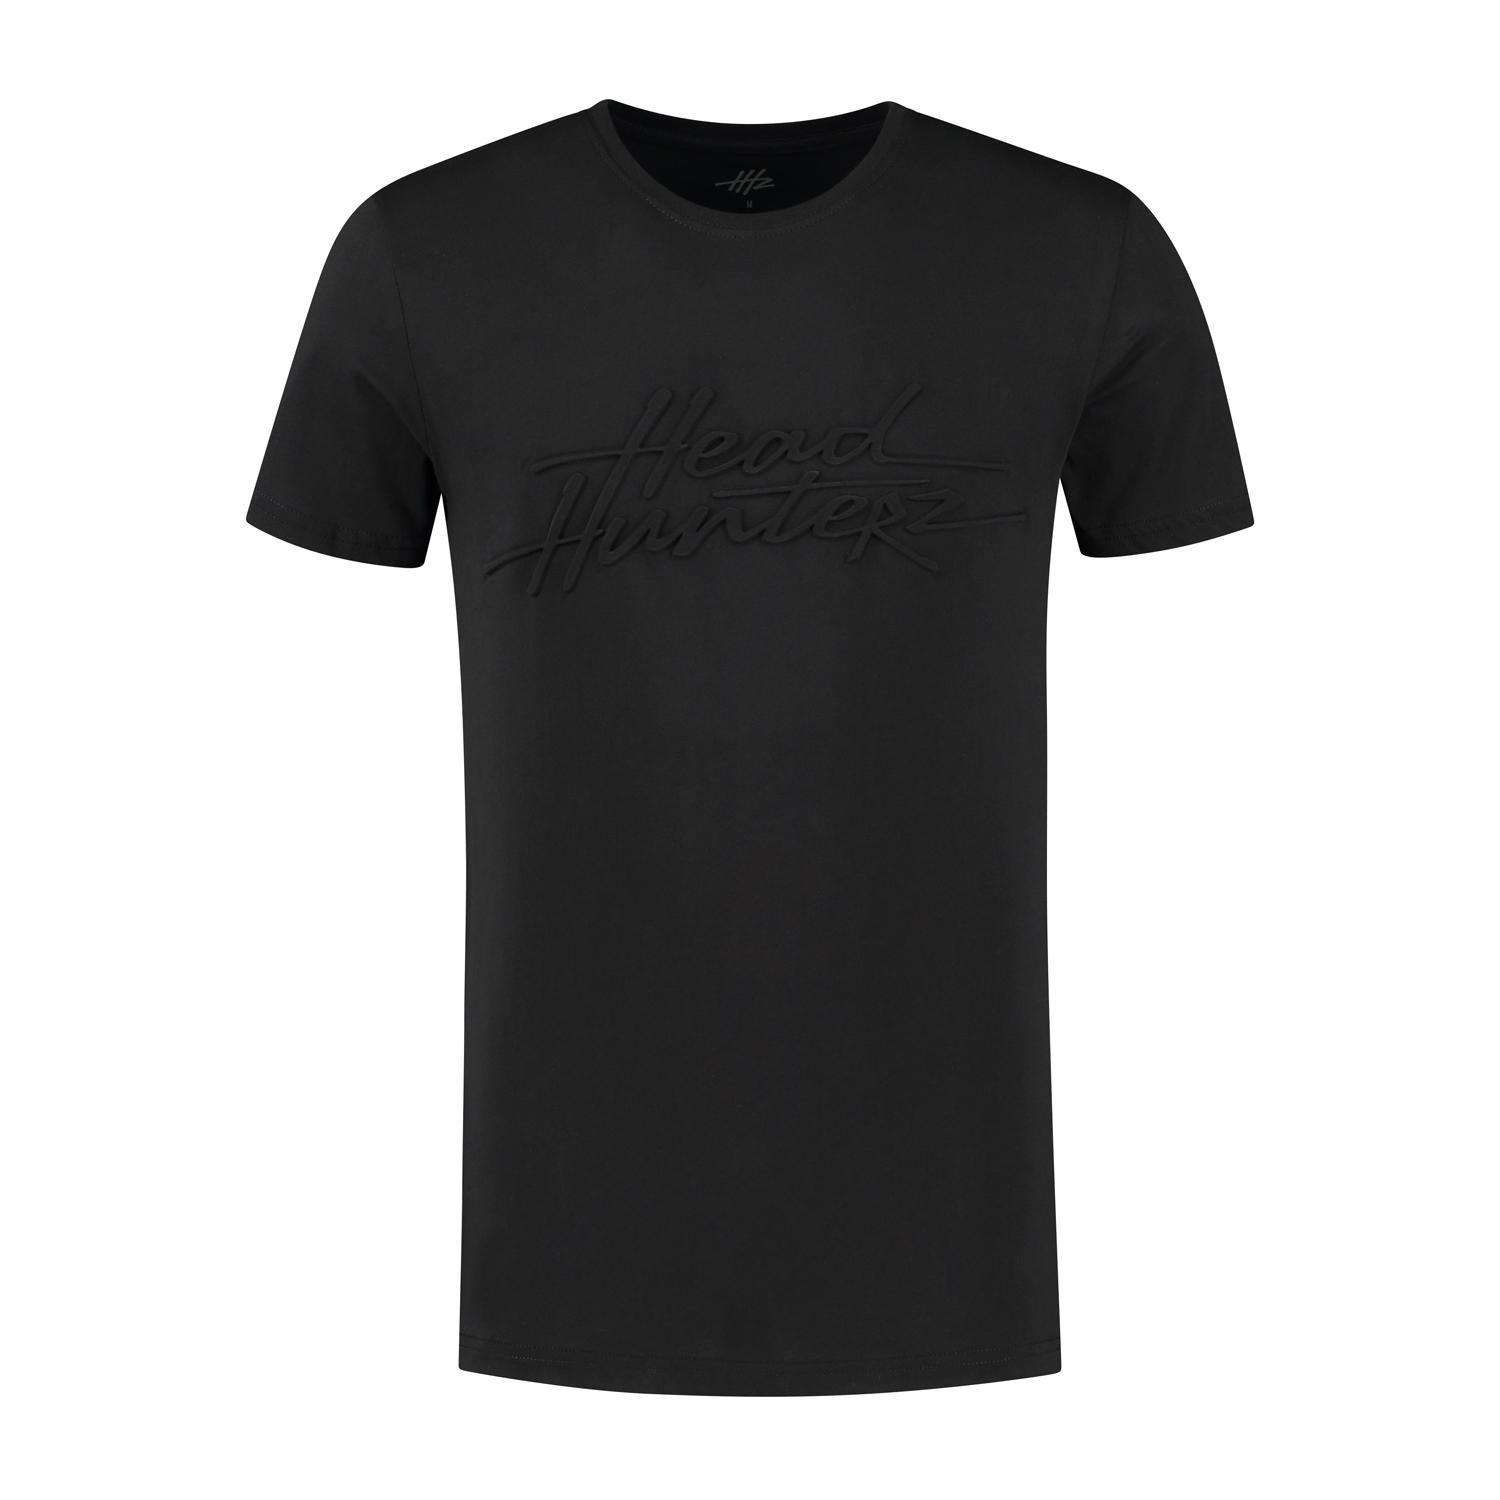 Headhunterz Tee Black